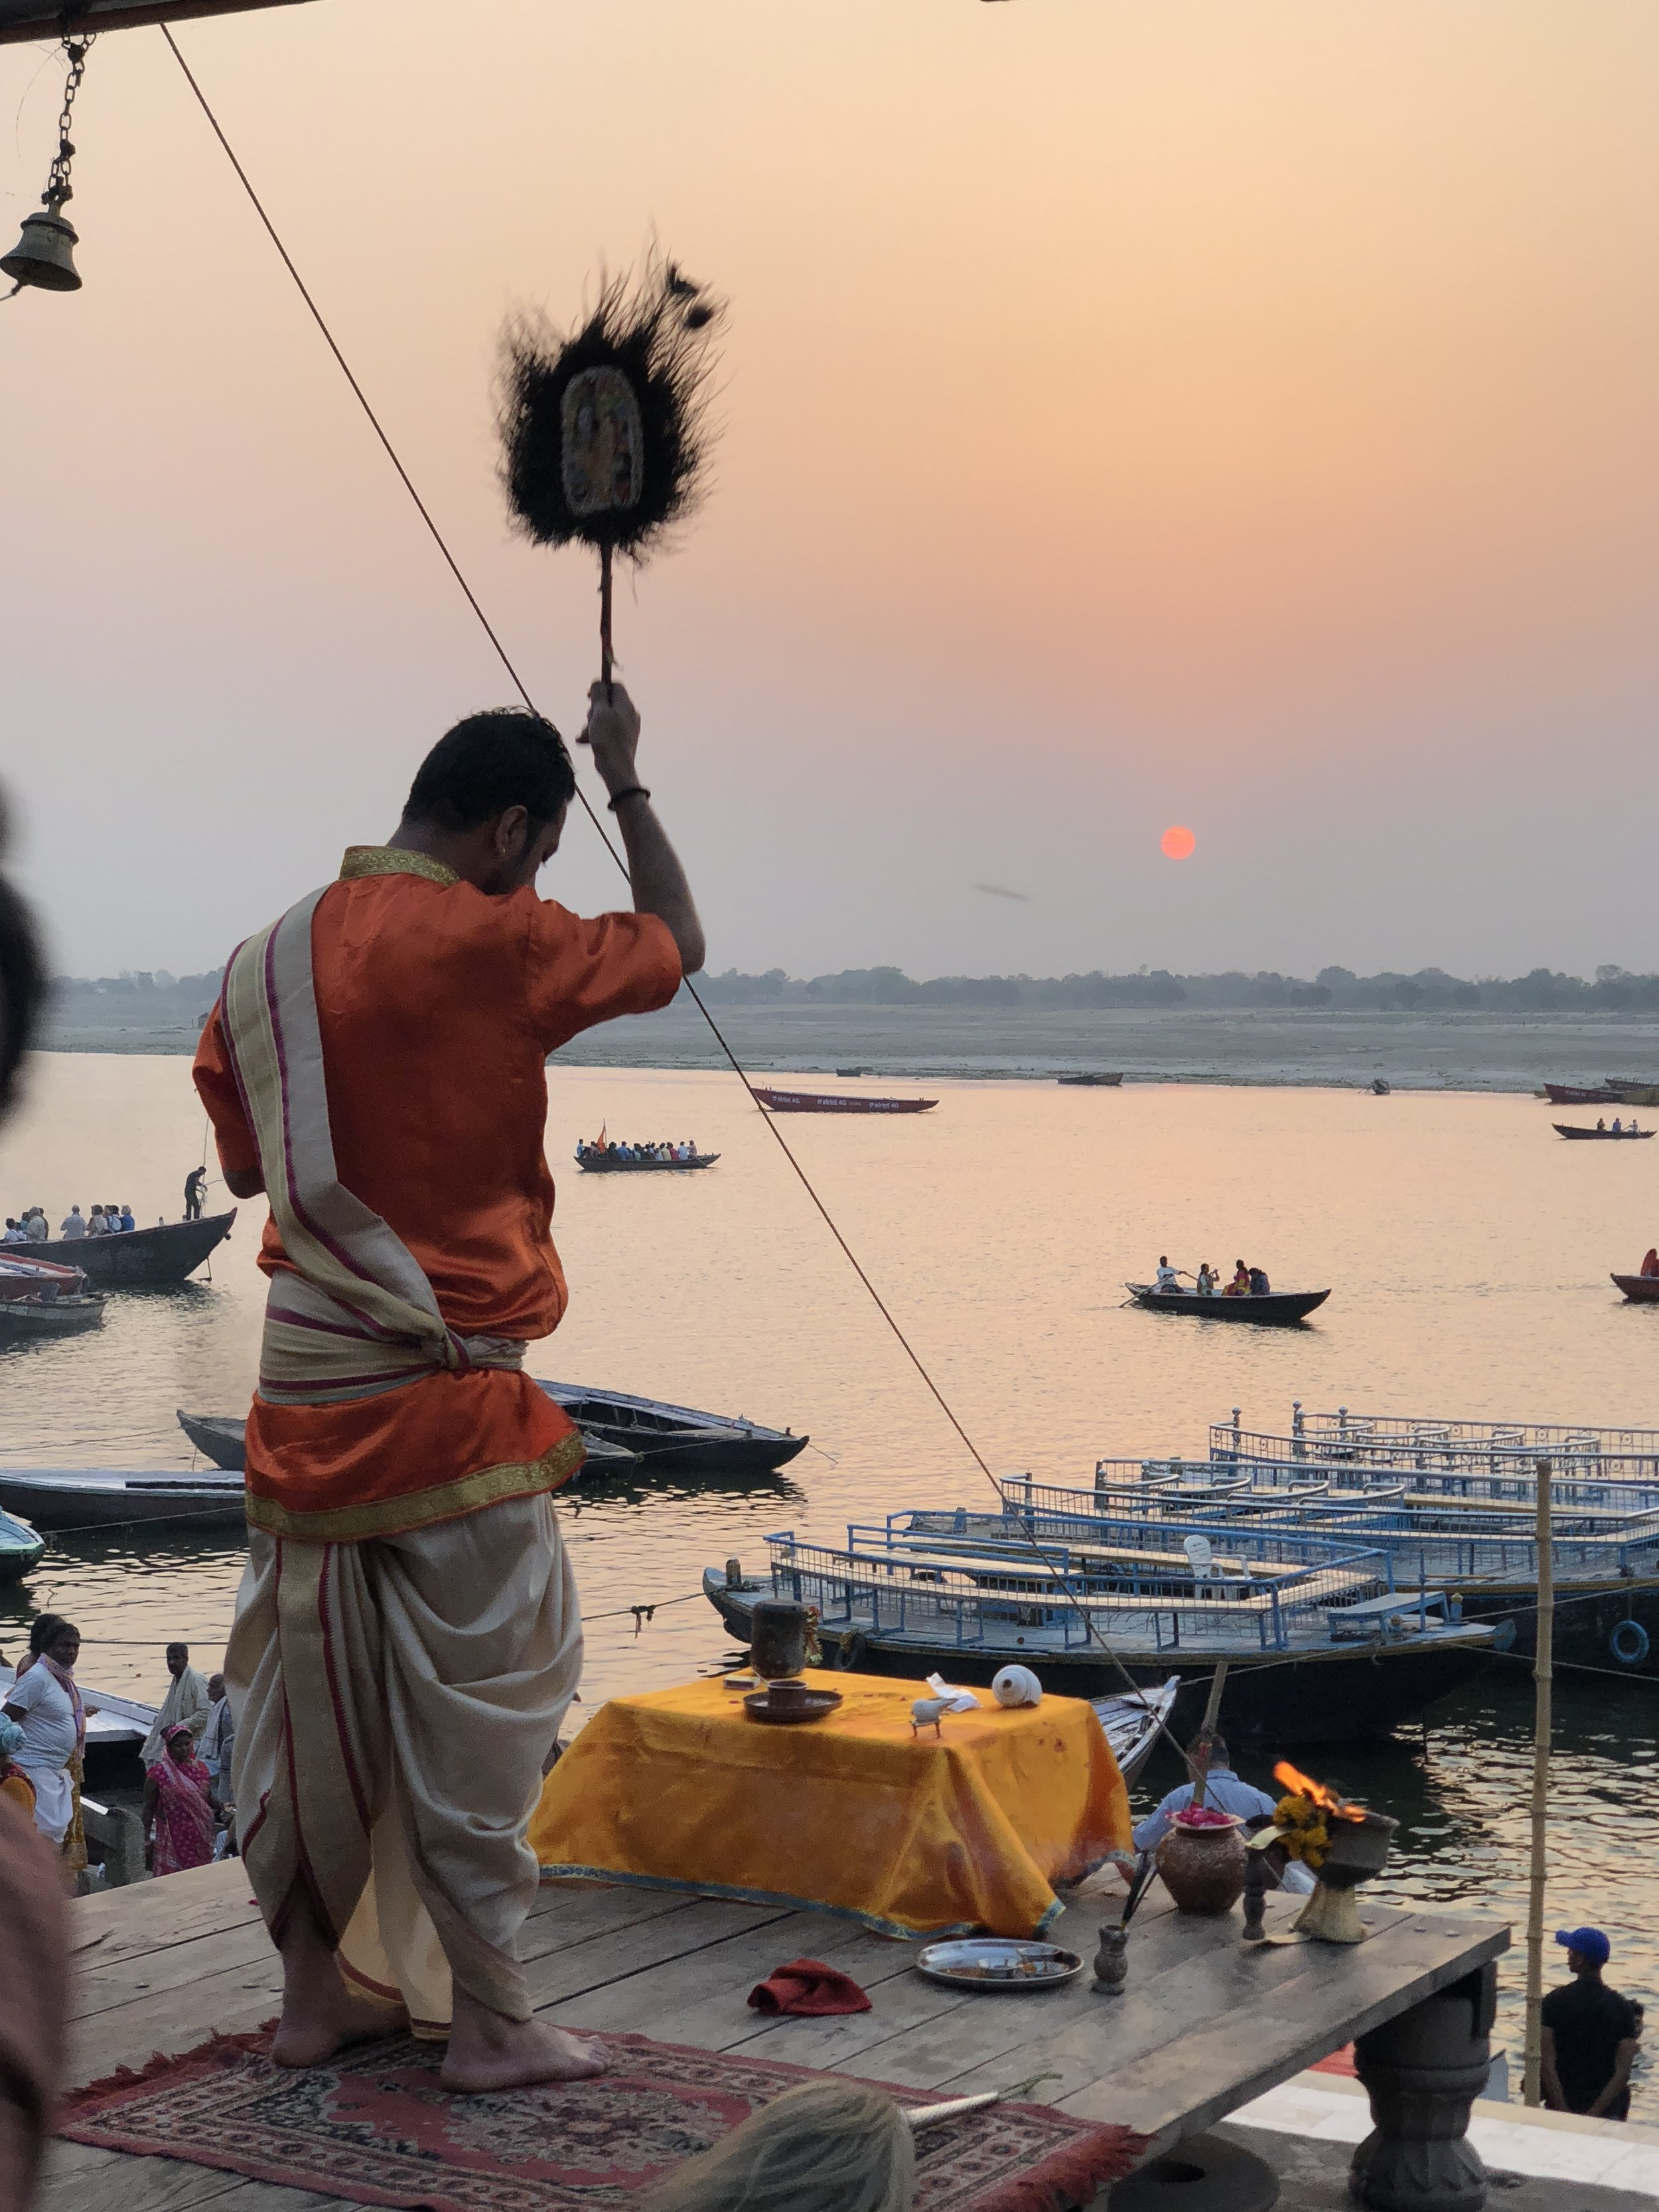 Sunrise at the Ganges